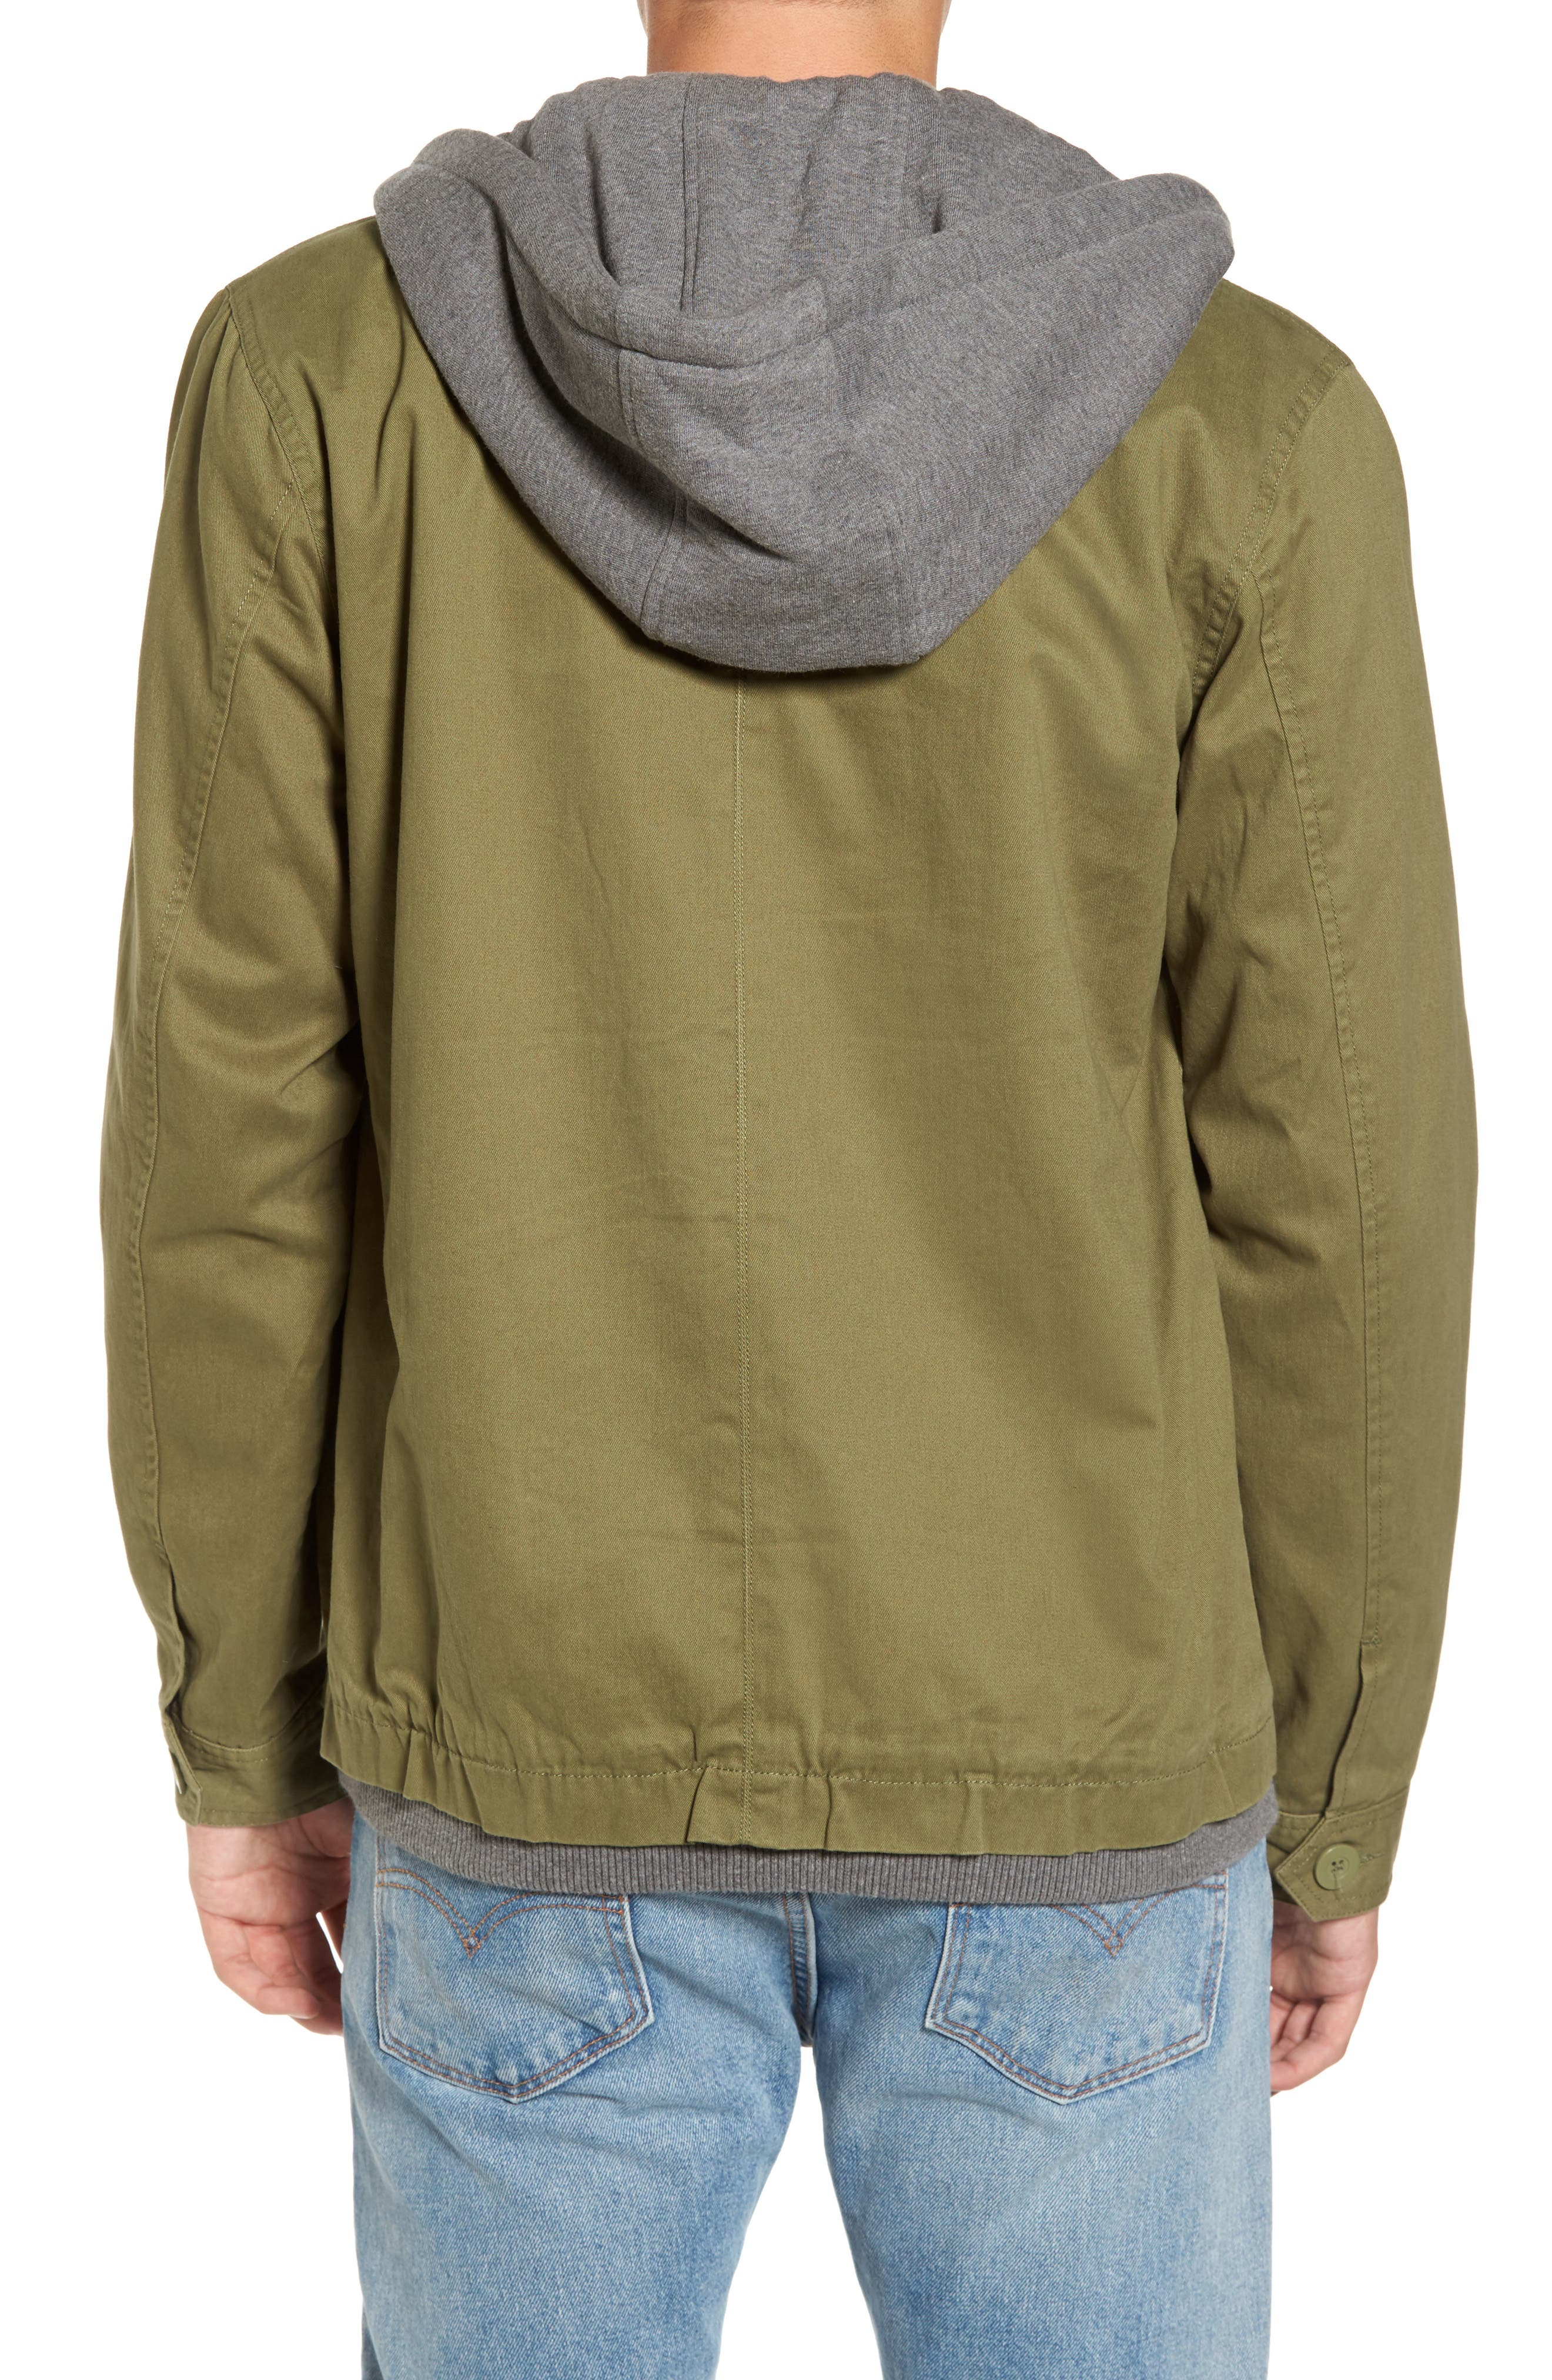 Droogs Field Jacket with Detachable Hood,                             Alternate thumbnail 2, color,                             001